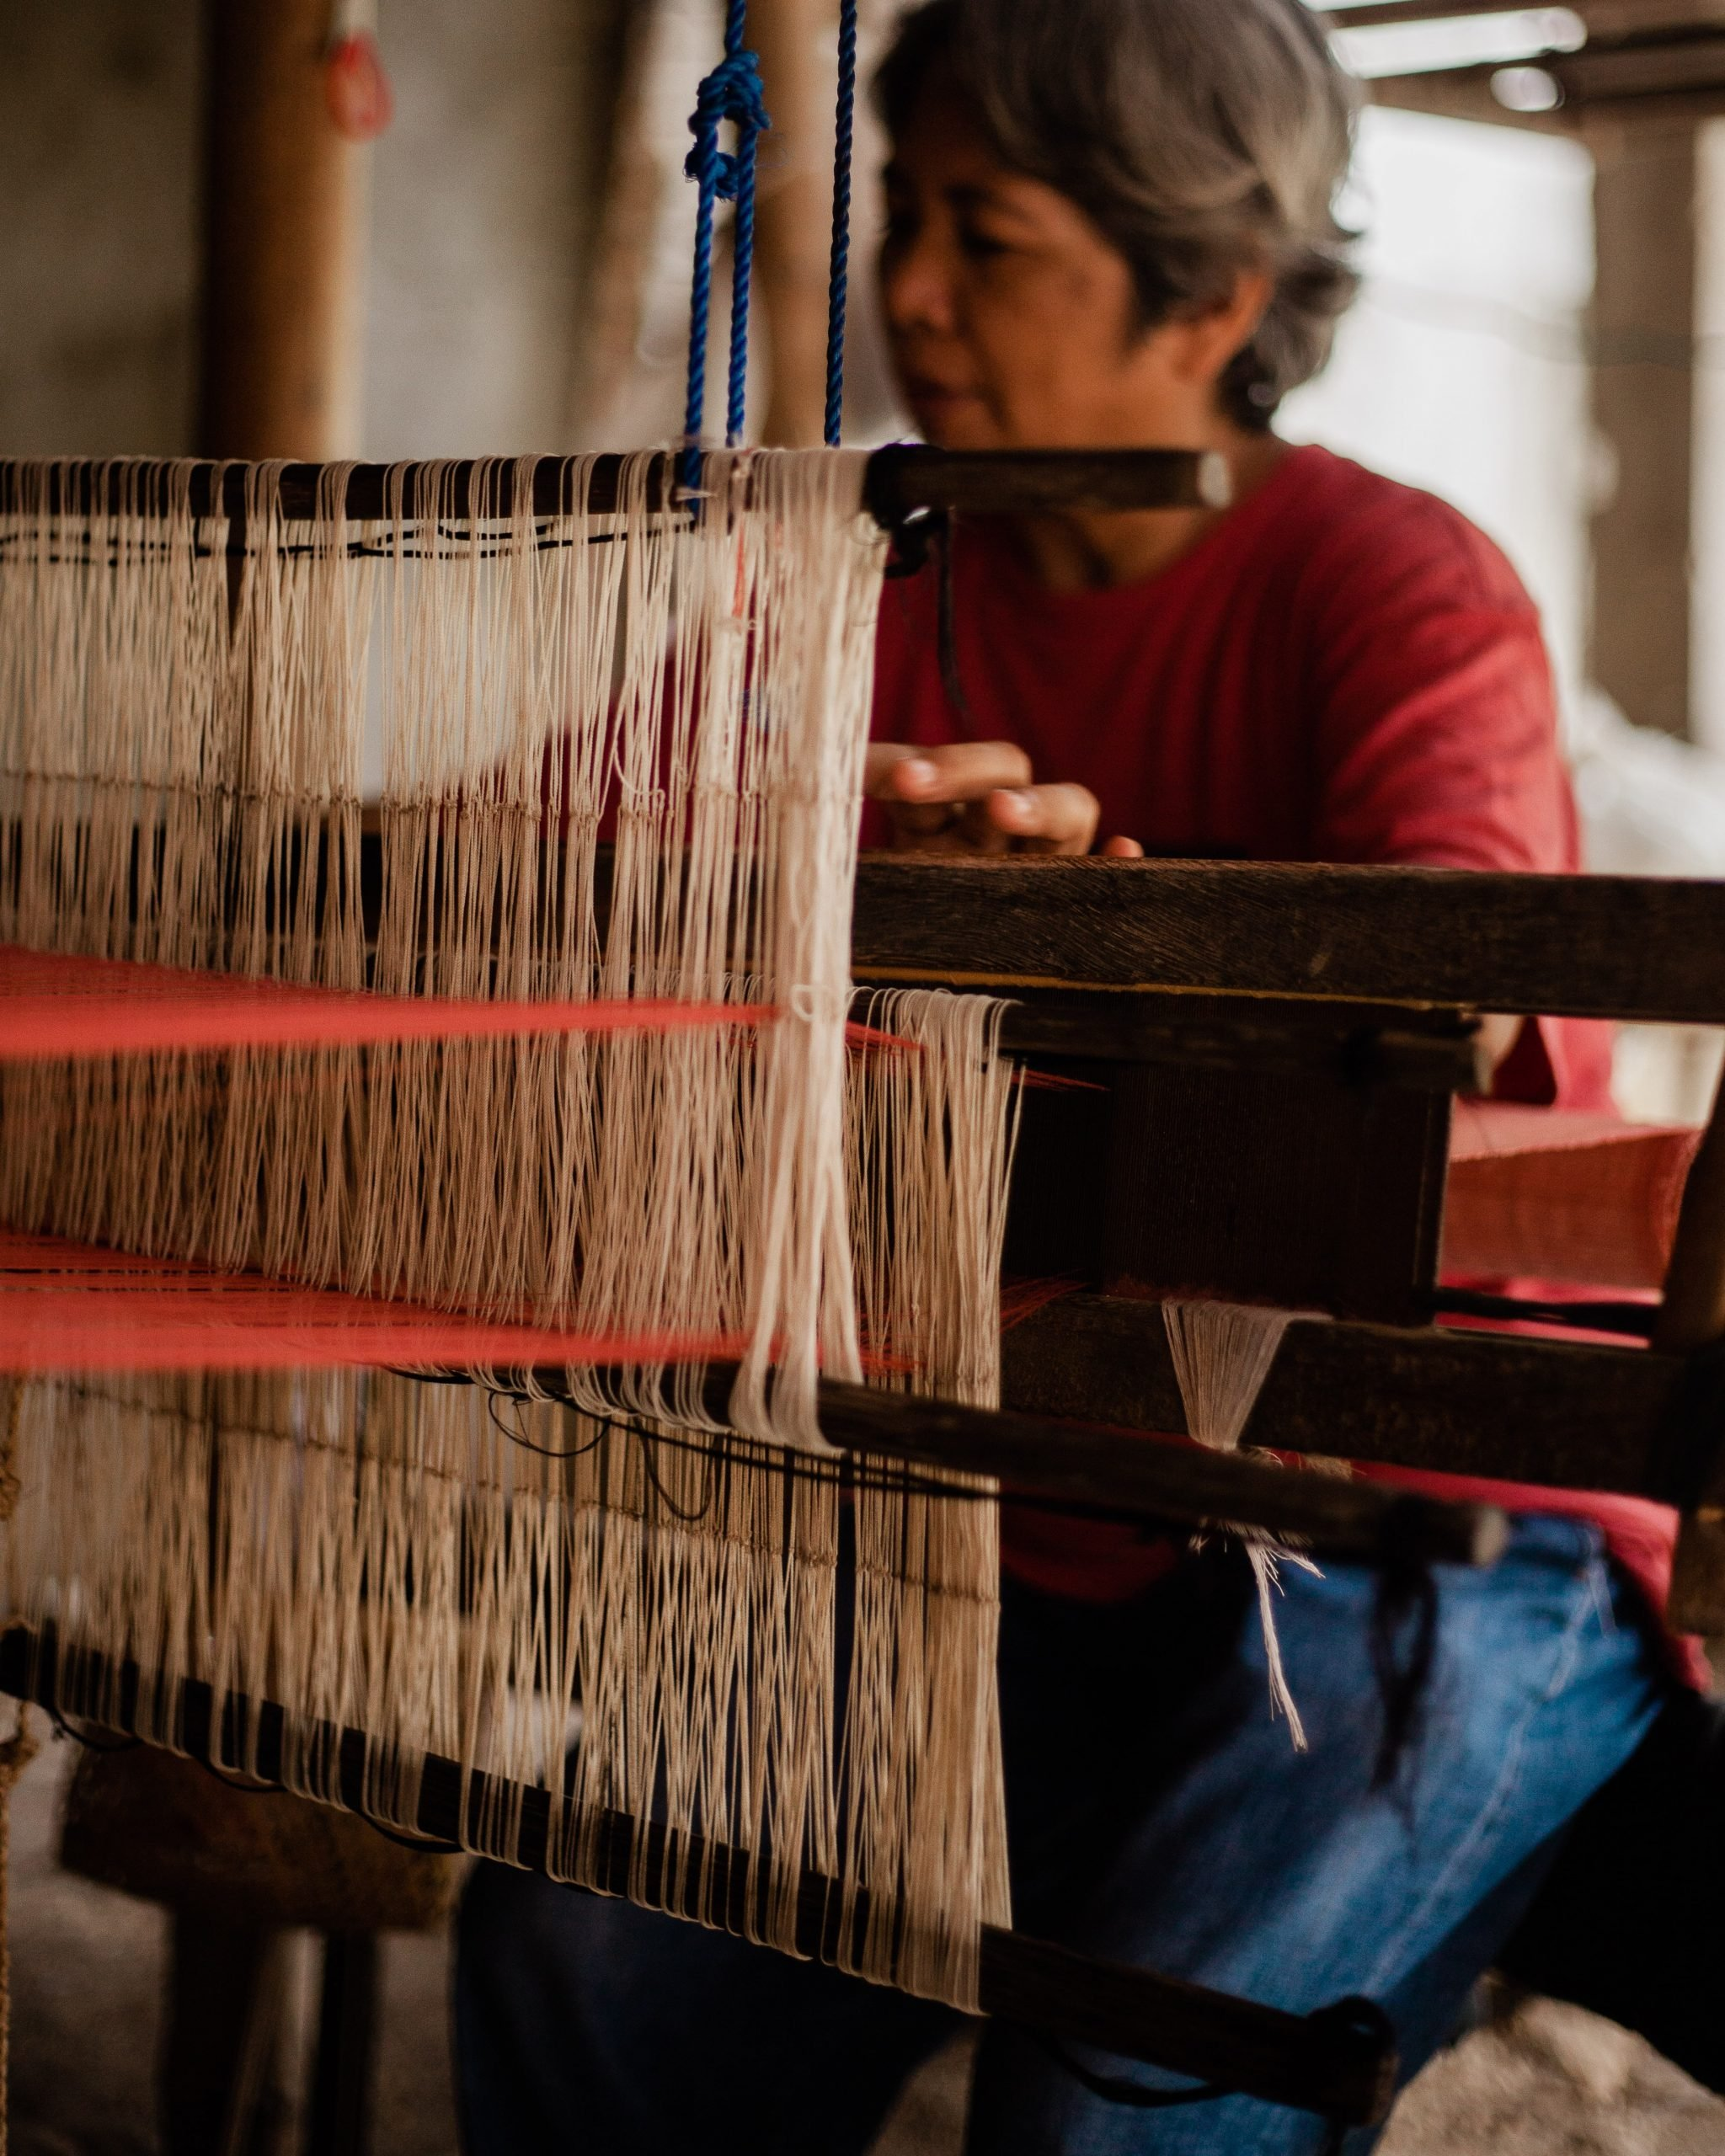 Woman in red long sleeve and blue denim jeans sitting and working on a weaving loom